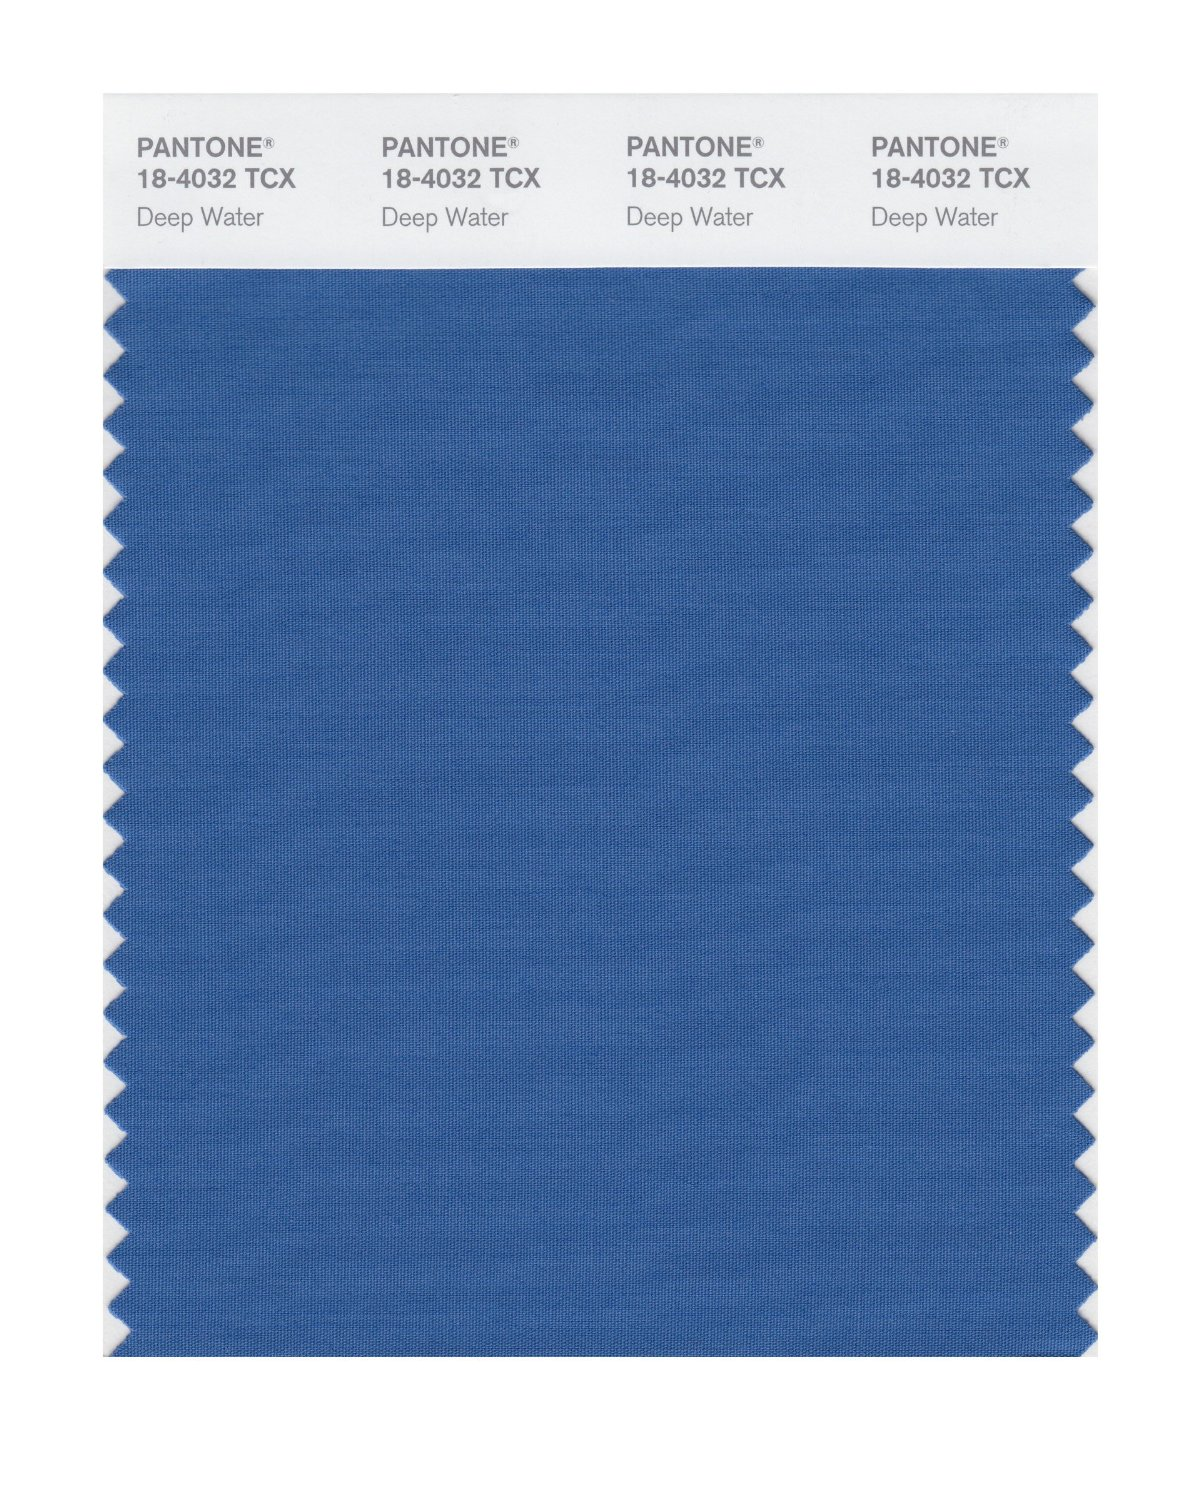 Pantone Smart Swatch 18-4032 Deep Water